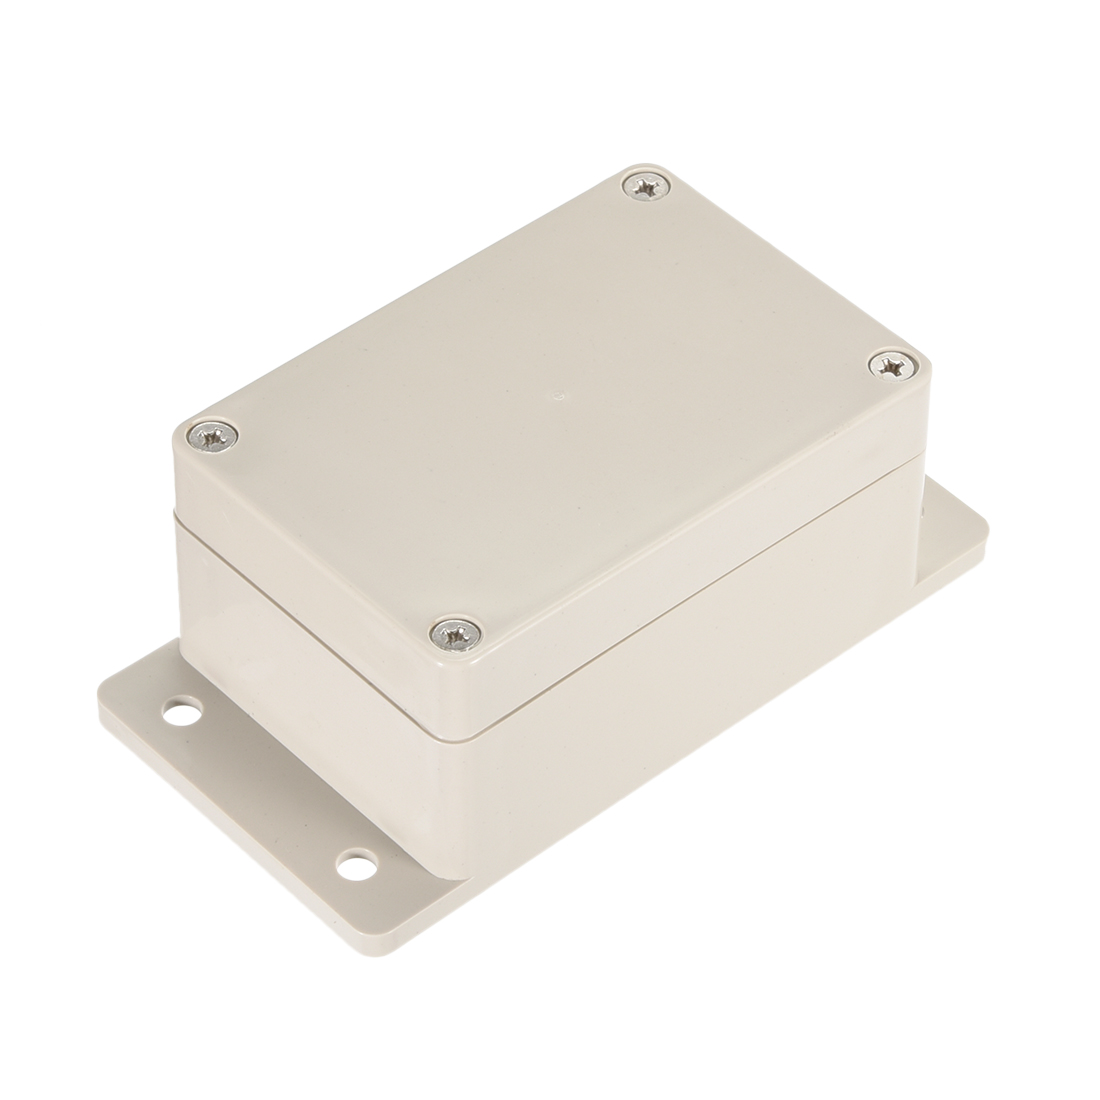 "3.9""x2.67""x2""(100mmx68mmx50mm) ABS Junction Box Universal Electric Project Enclosure w Fixed Ear"